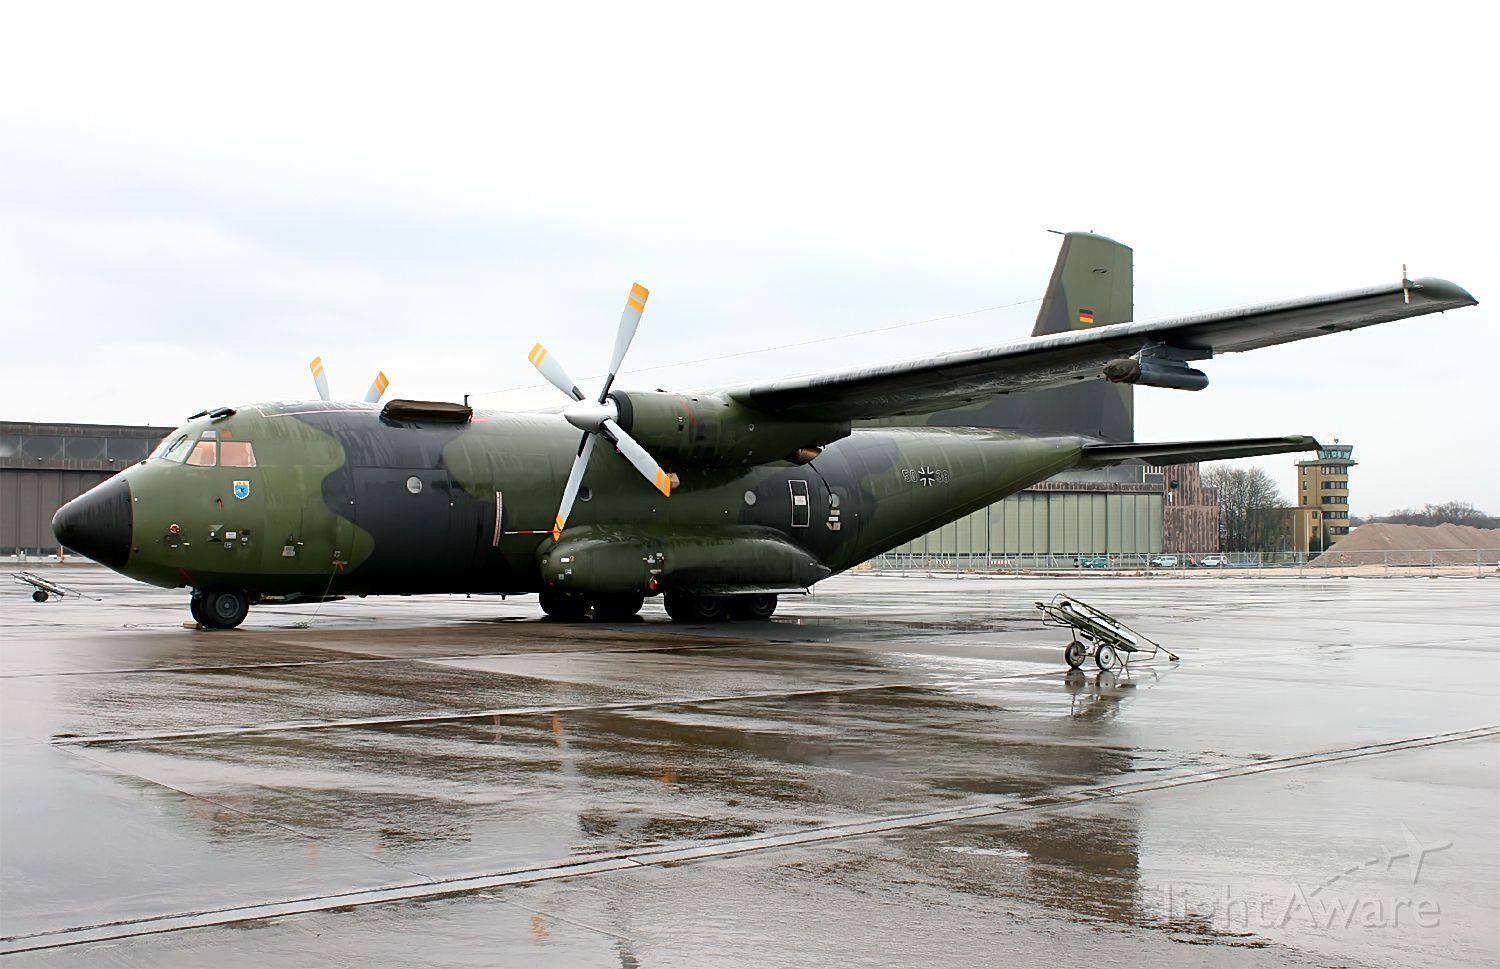 TRANSALL C-160 (N5038) - as medical evacuation often are flown in hazardous conditions 5038 is equipped with some self protection